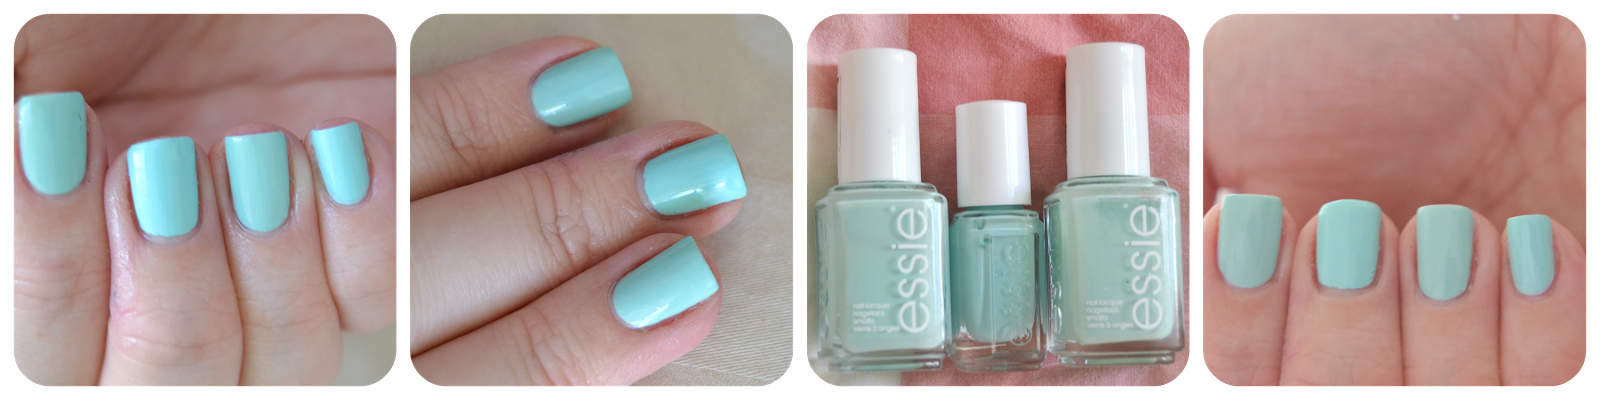 Blossom Dandy vs. Mint Candy Apple Vergleich Swatch MCA LE Flowerista